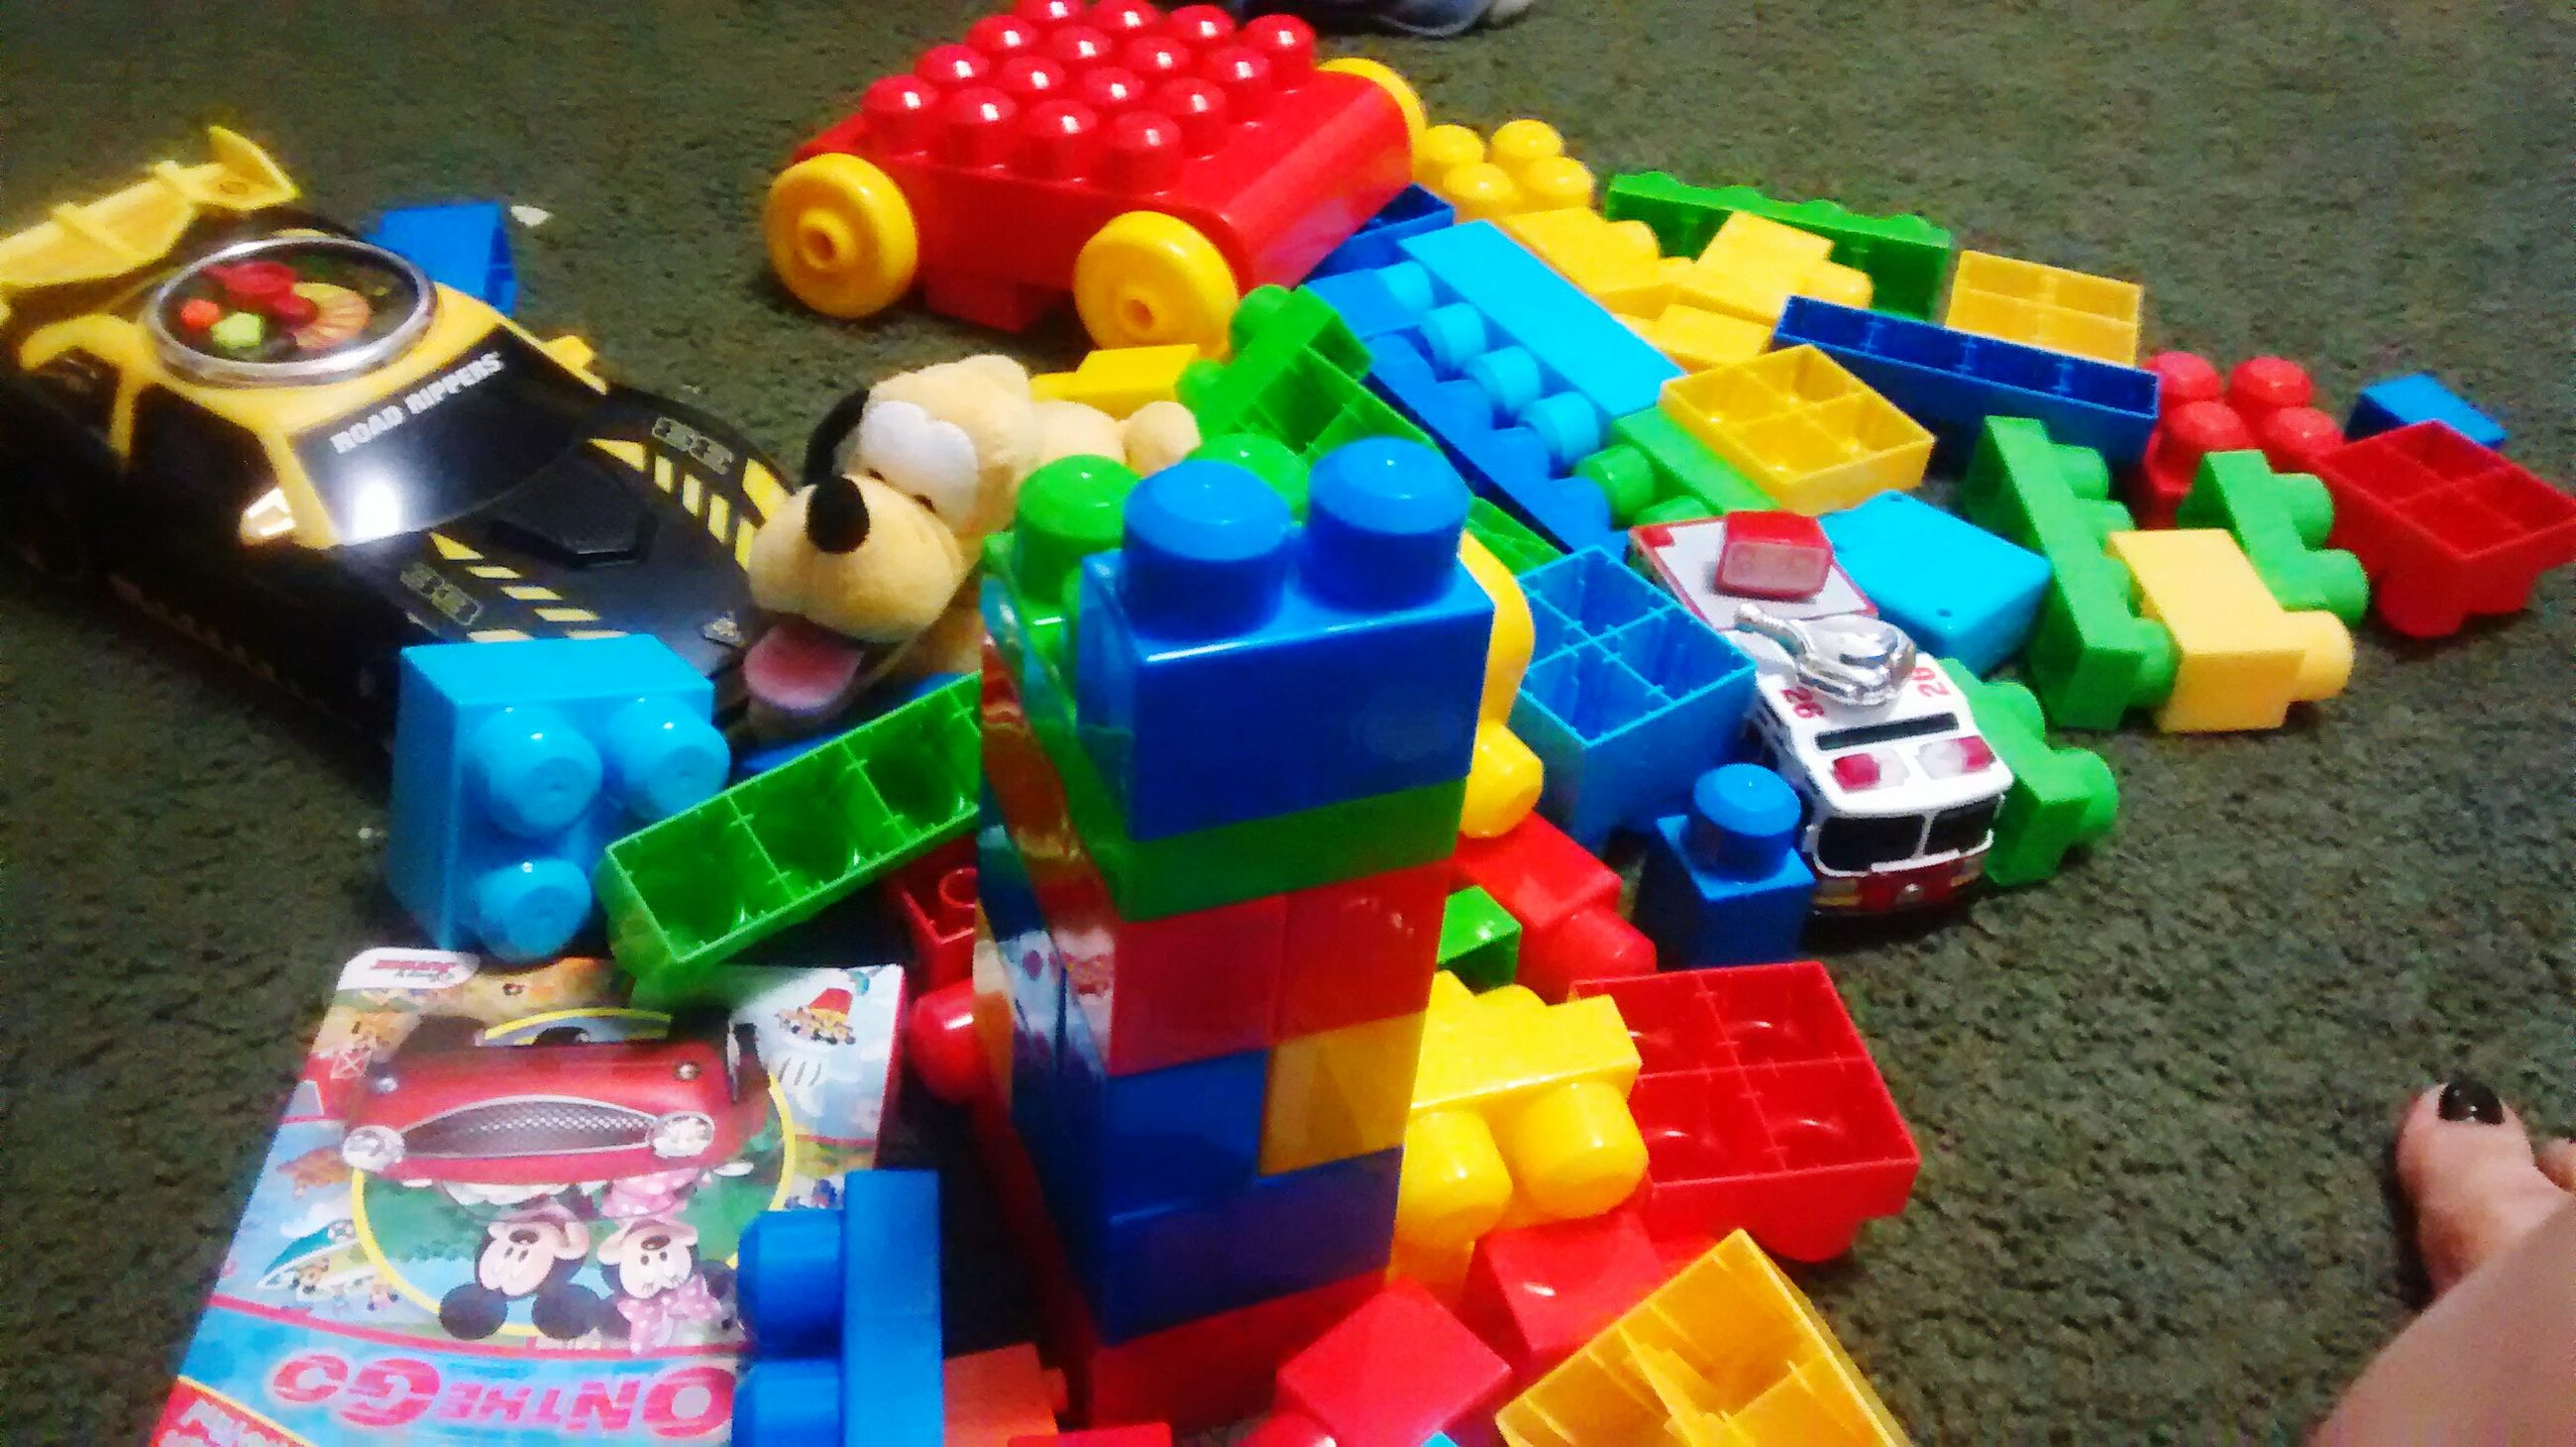 multi colored, high angle view, indoors, variation, childhood, large group of objects, leisure activity, toy, choice, lifestyles, table, colorful, leisure games, abundance, still life, fun, plastic, arrangement